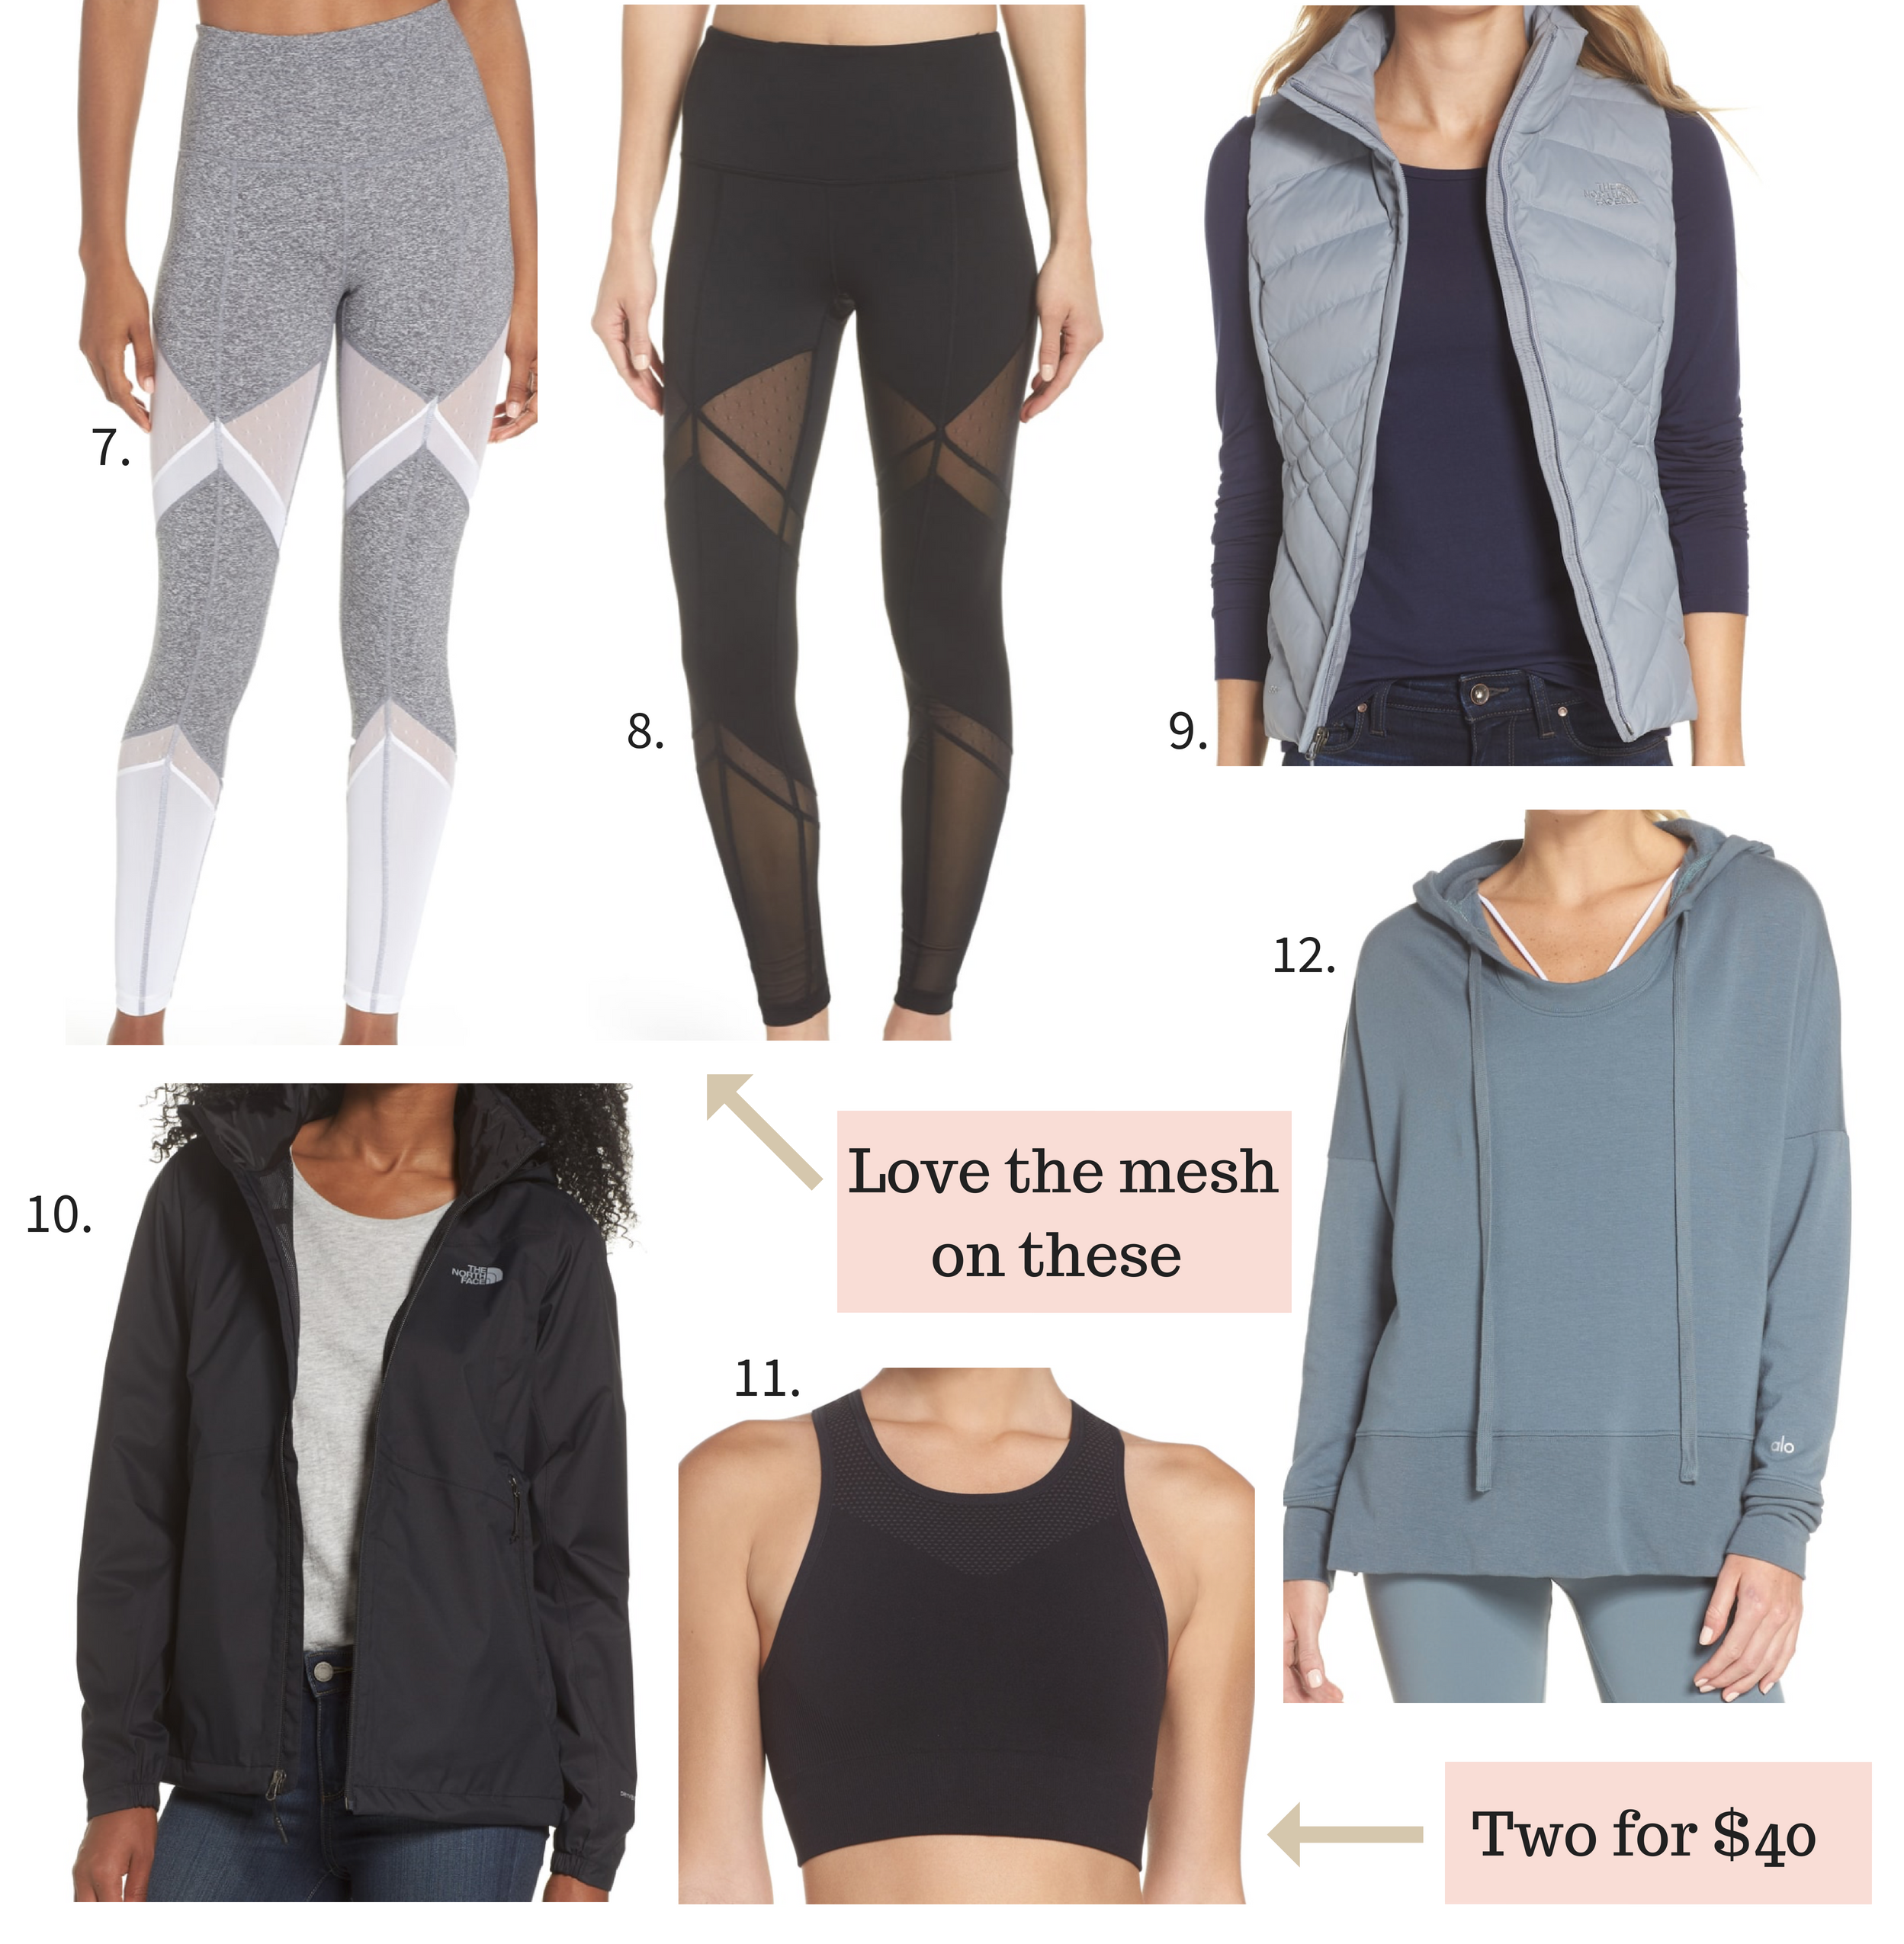 Nordstrom Anniversary Sale 2018 workout clothes